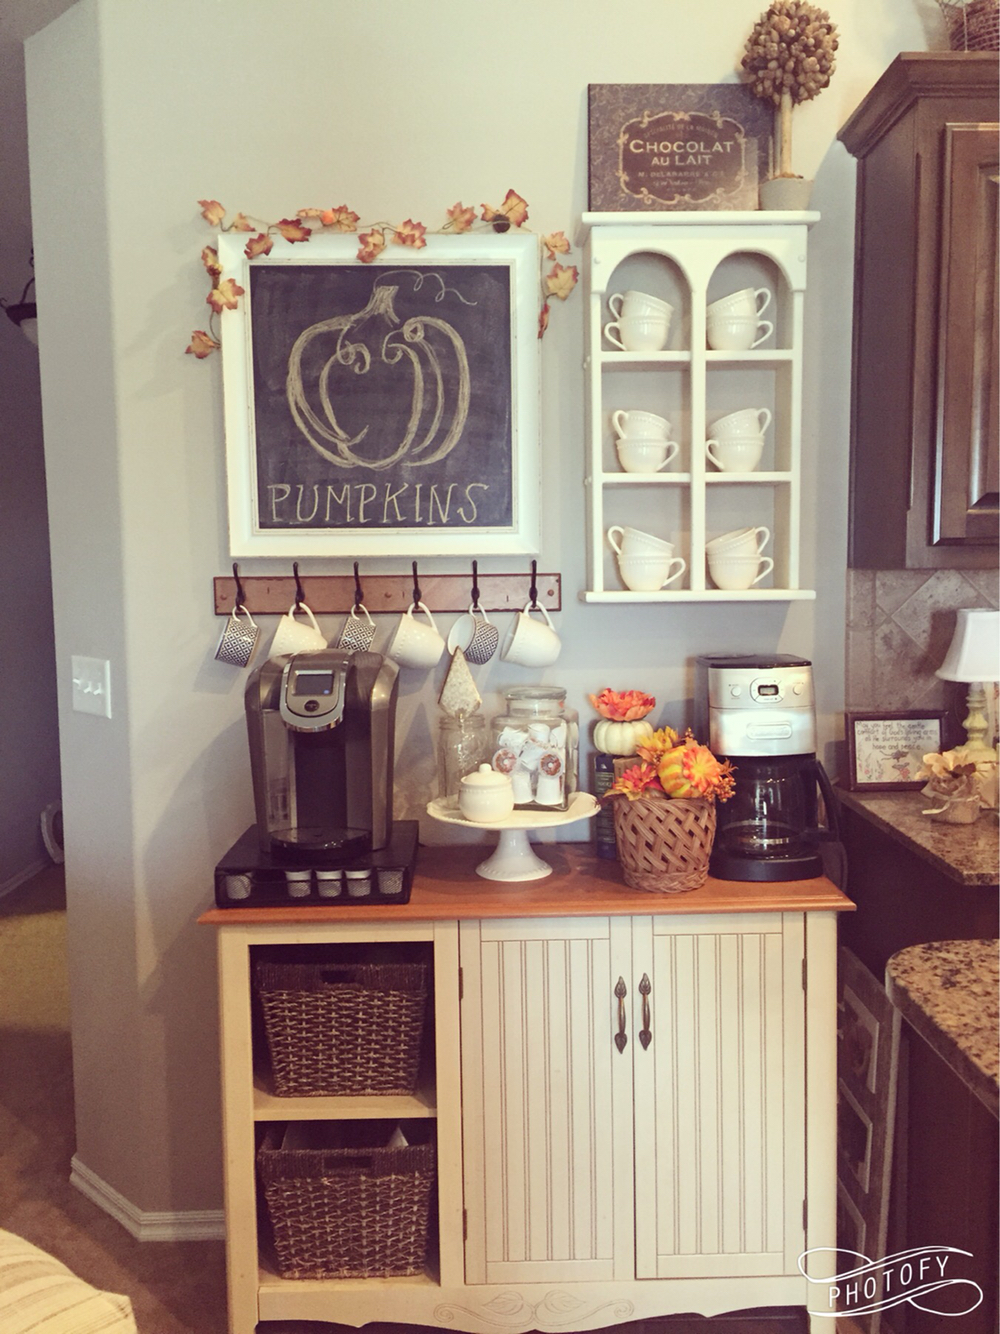 20 Coffee Station Ideas To Light Up Your Day - Craftsonfire